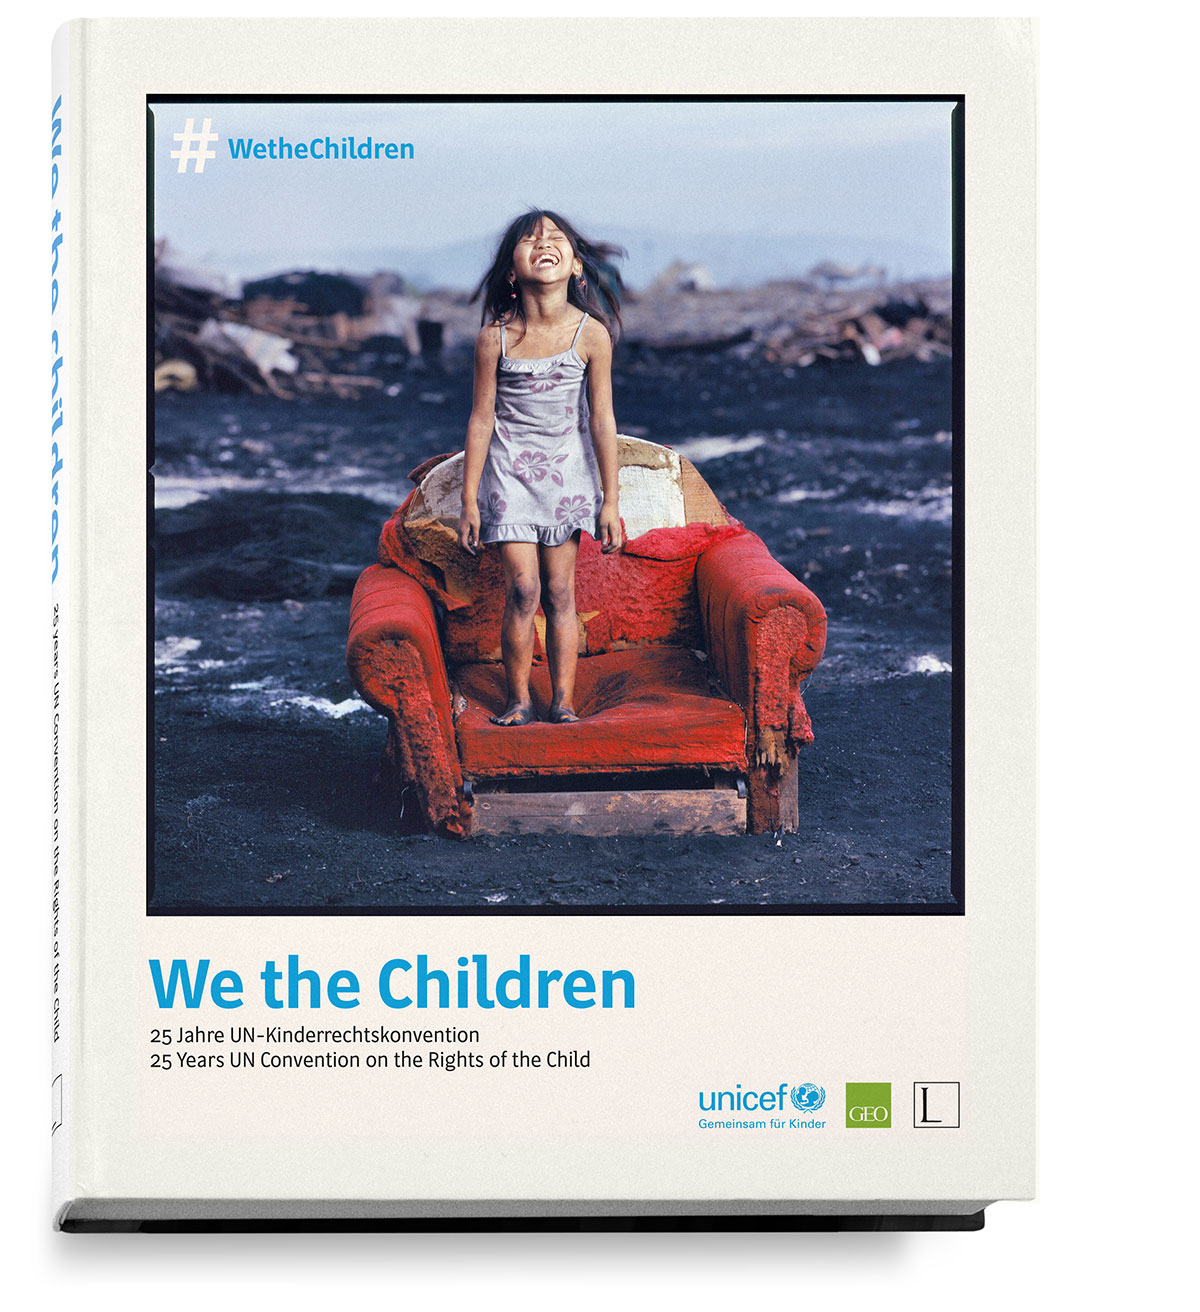 lammerhuber-unicef-children